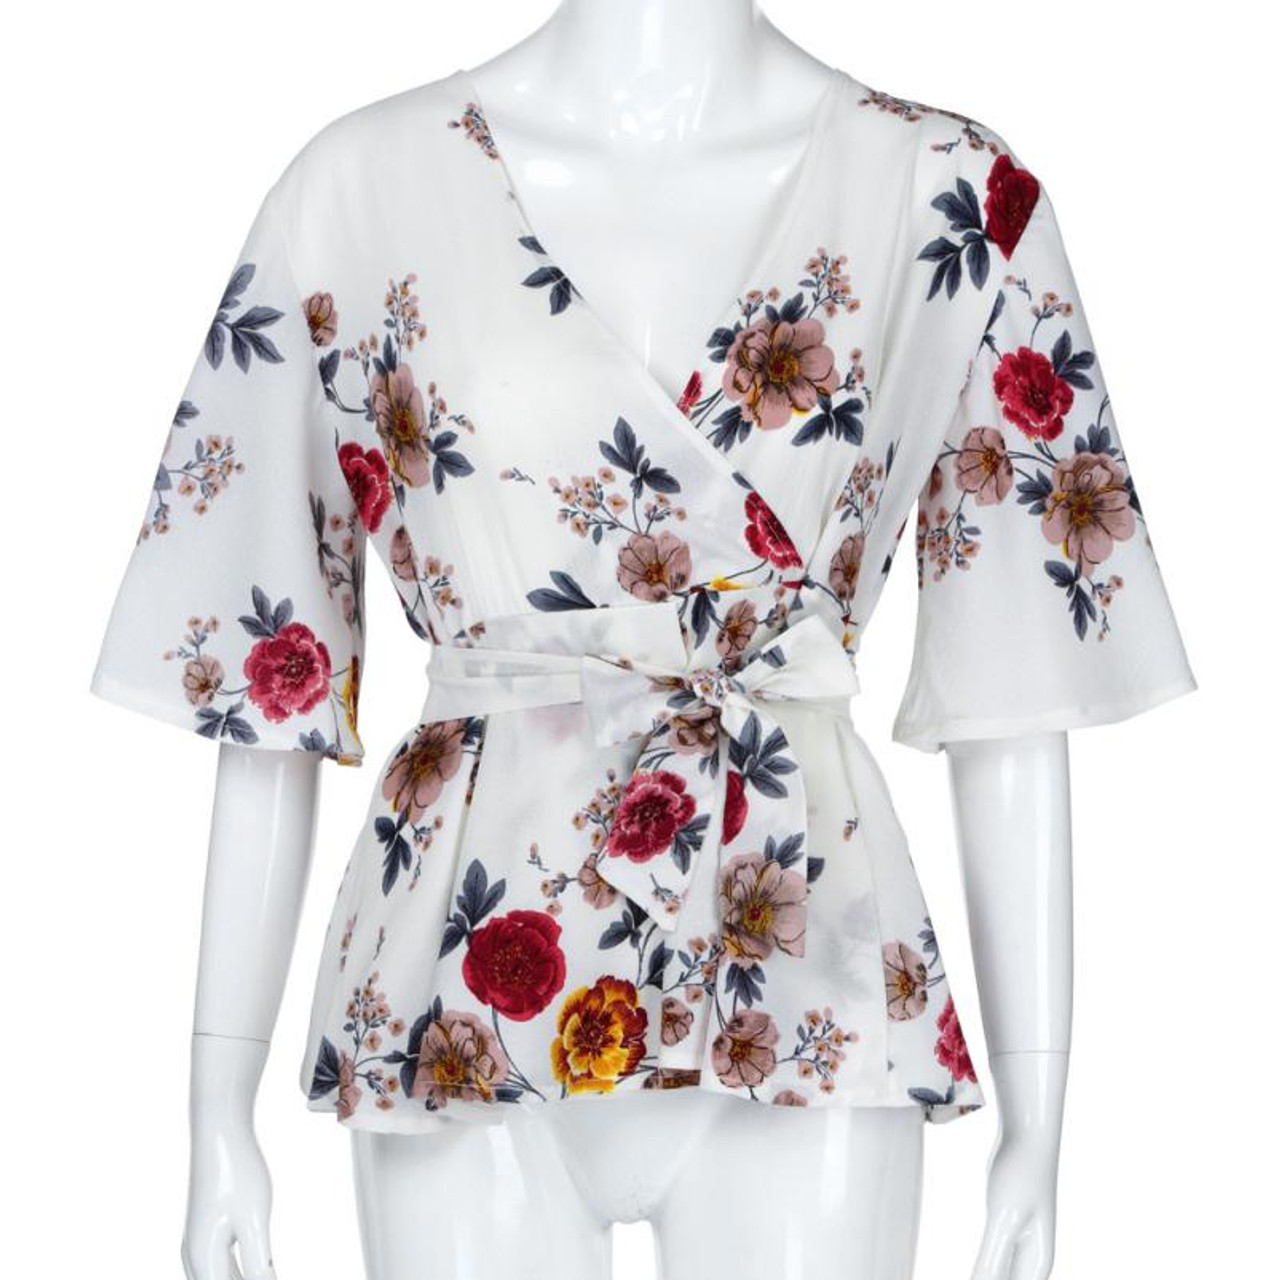 74e9a2ba6bfa6 ... Feitong Womens Blouse Plus Size Sexy V Neck Floral Print Flare Sleeve Belted  Surplice Peplum Tops ...